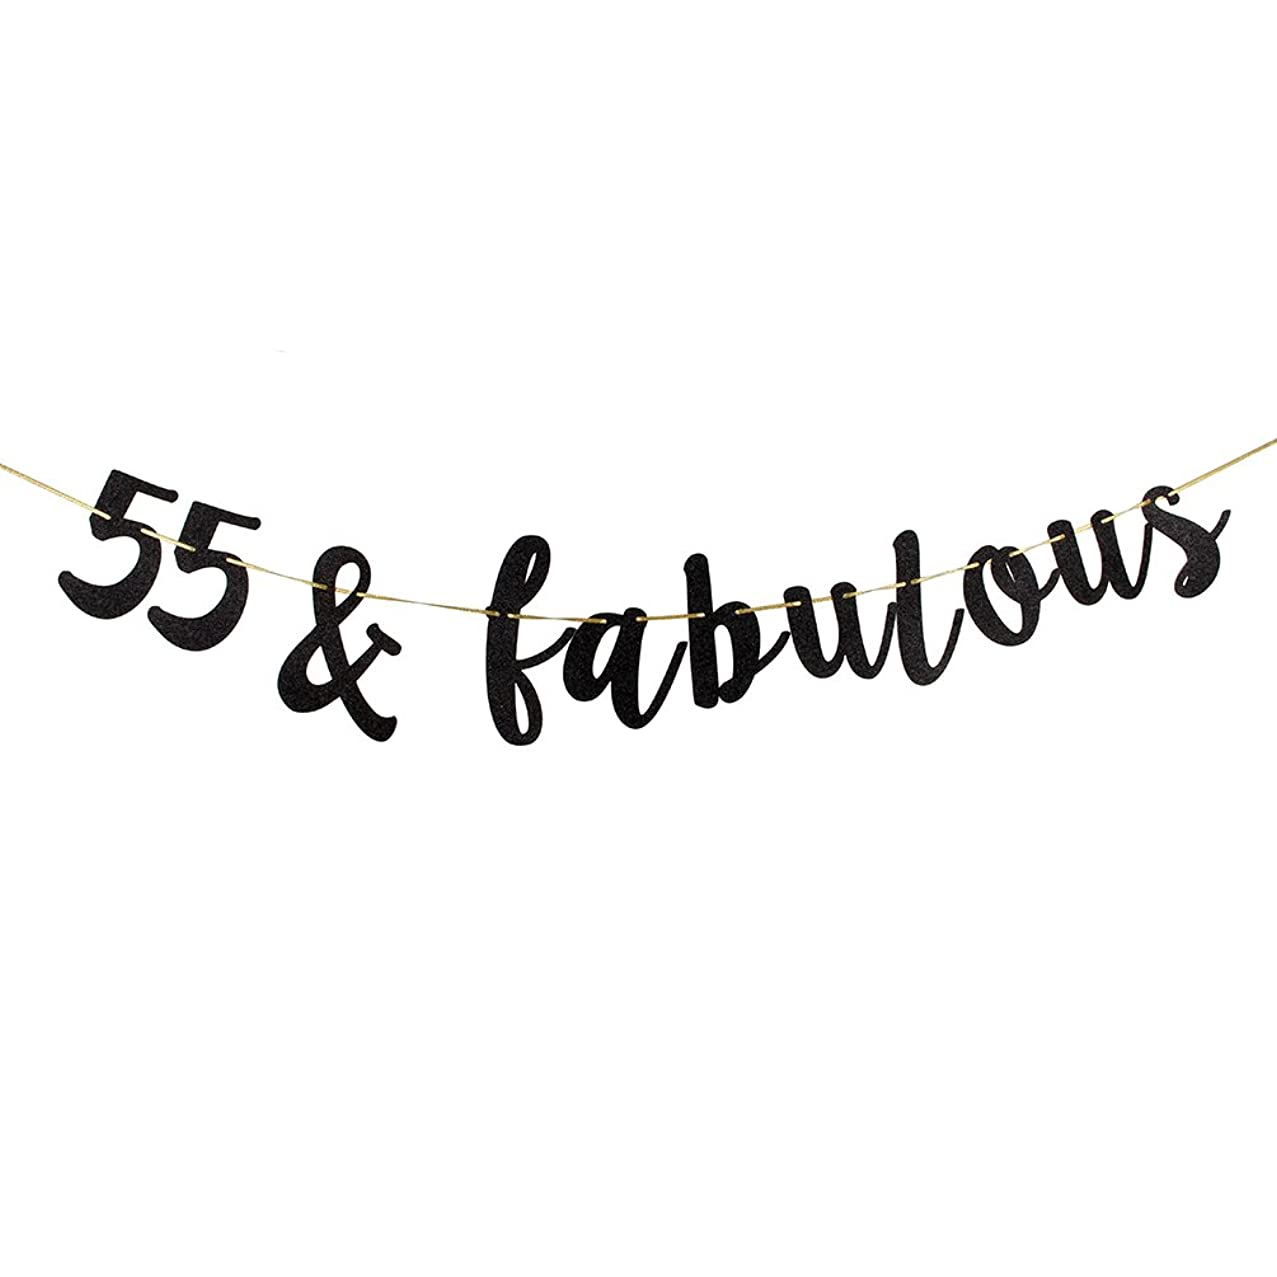 55 & Fabulous Banner, Black Glitter 55th Birthday Party Decoration Sign